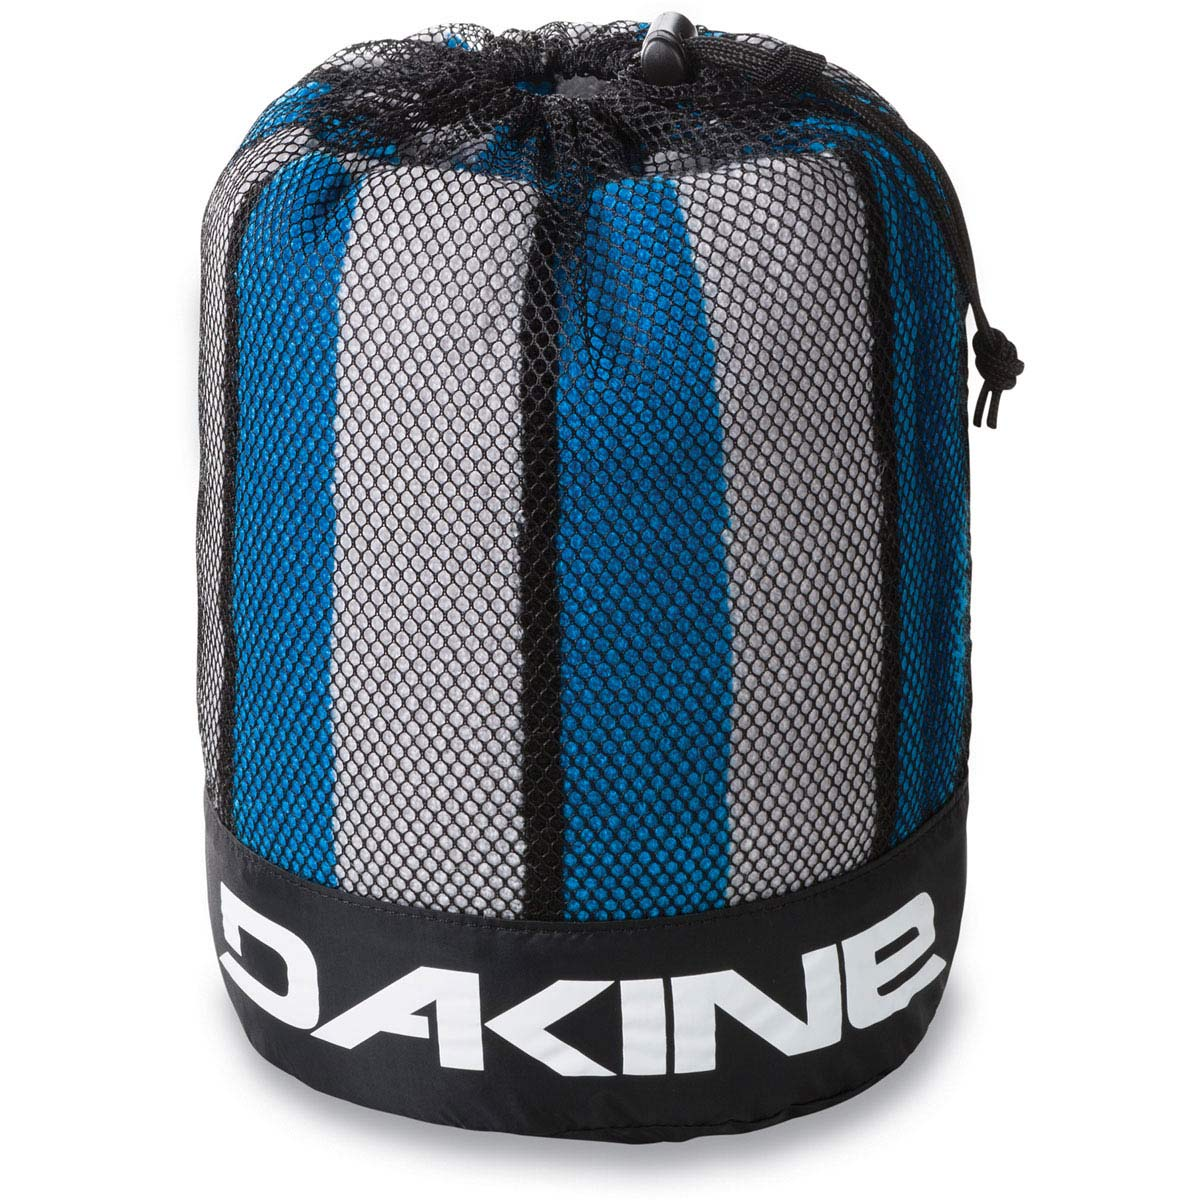 Dakine Knit Surfbag - Hybrid - choose size